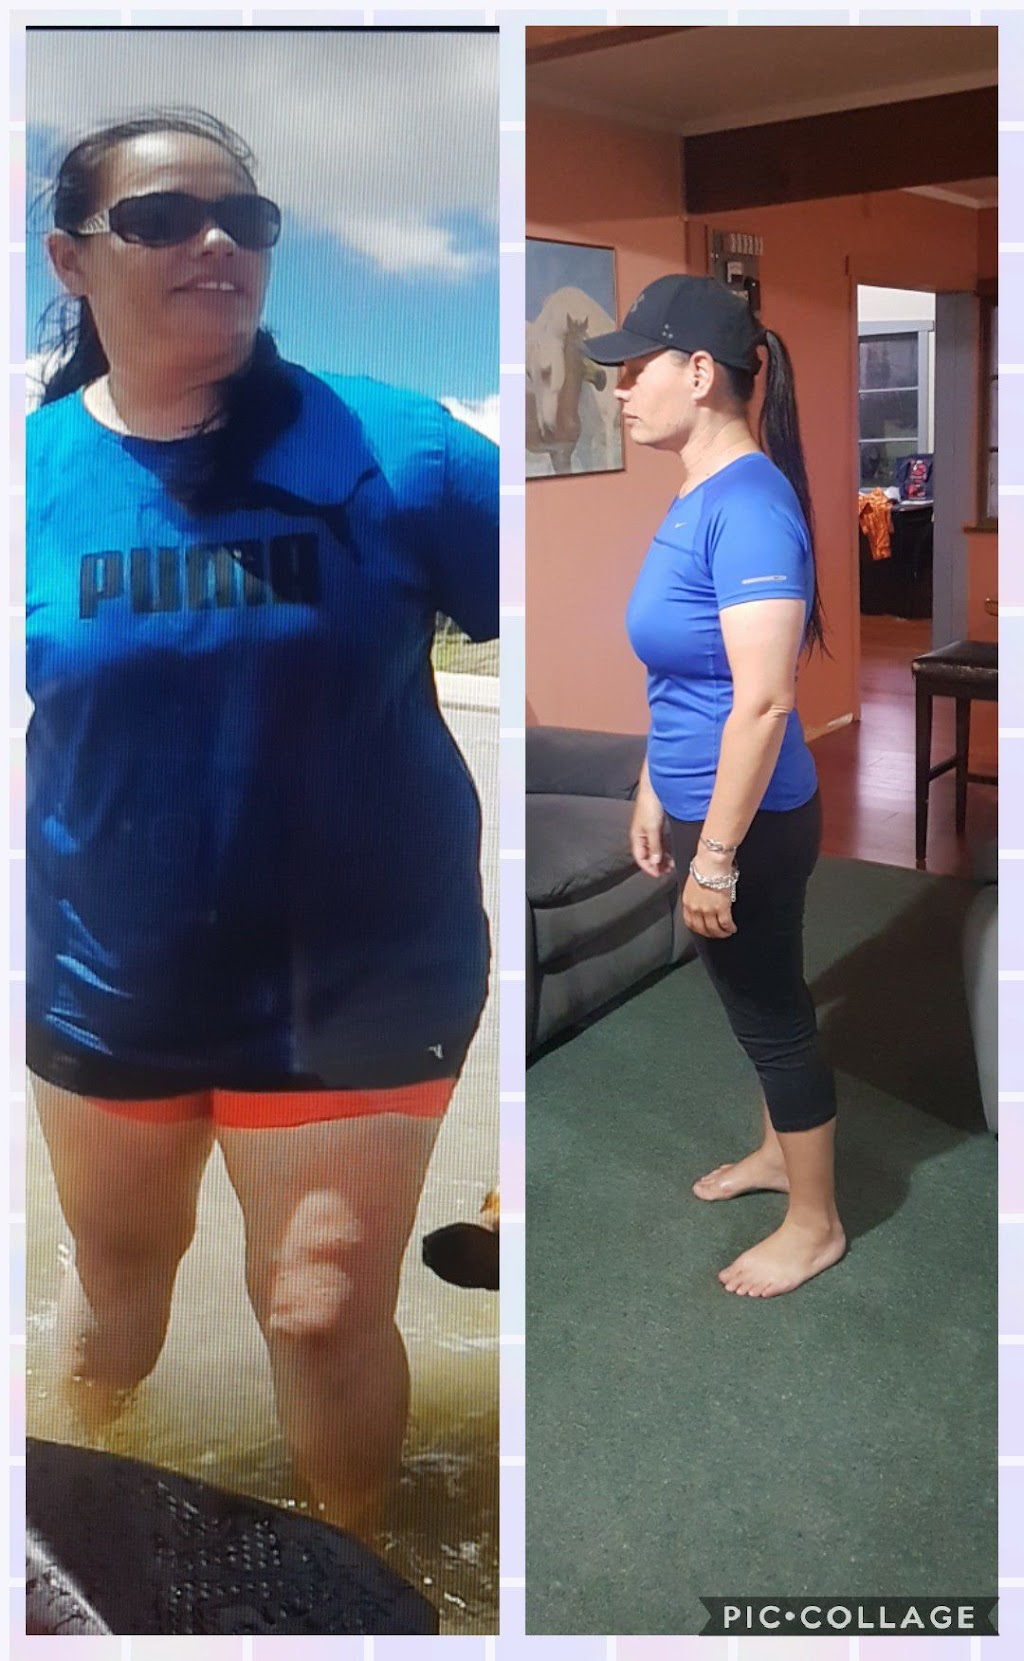 phatt weight loss program reviews